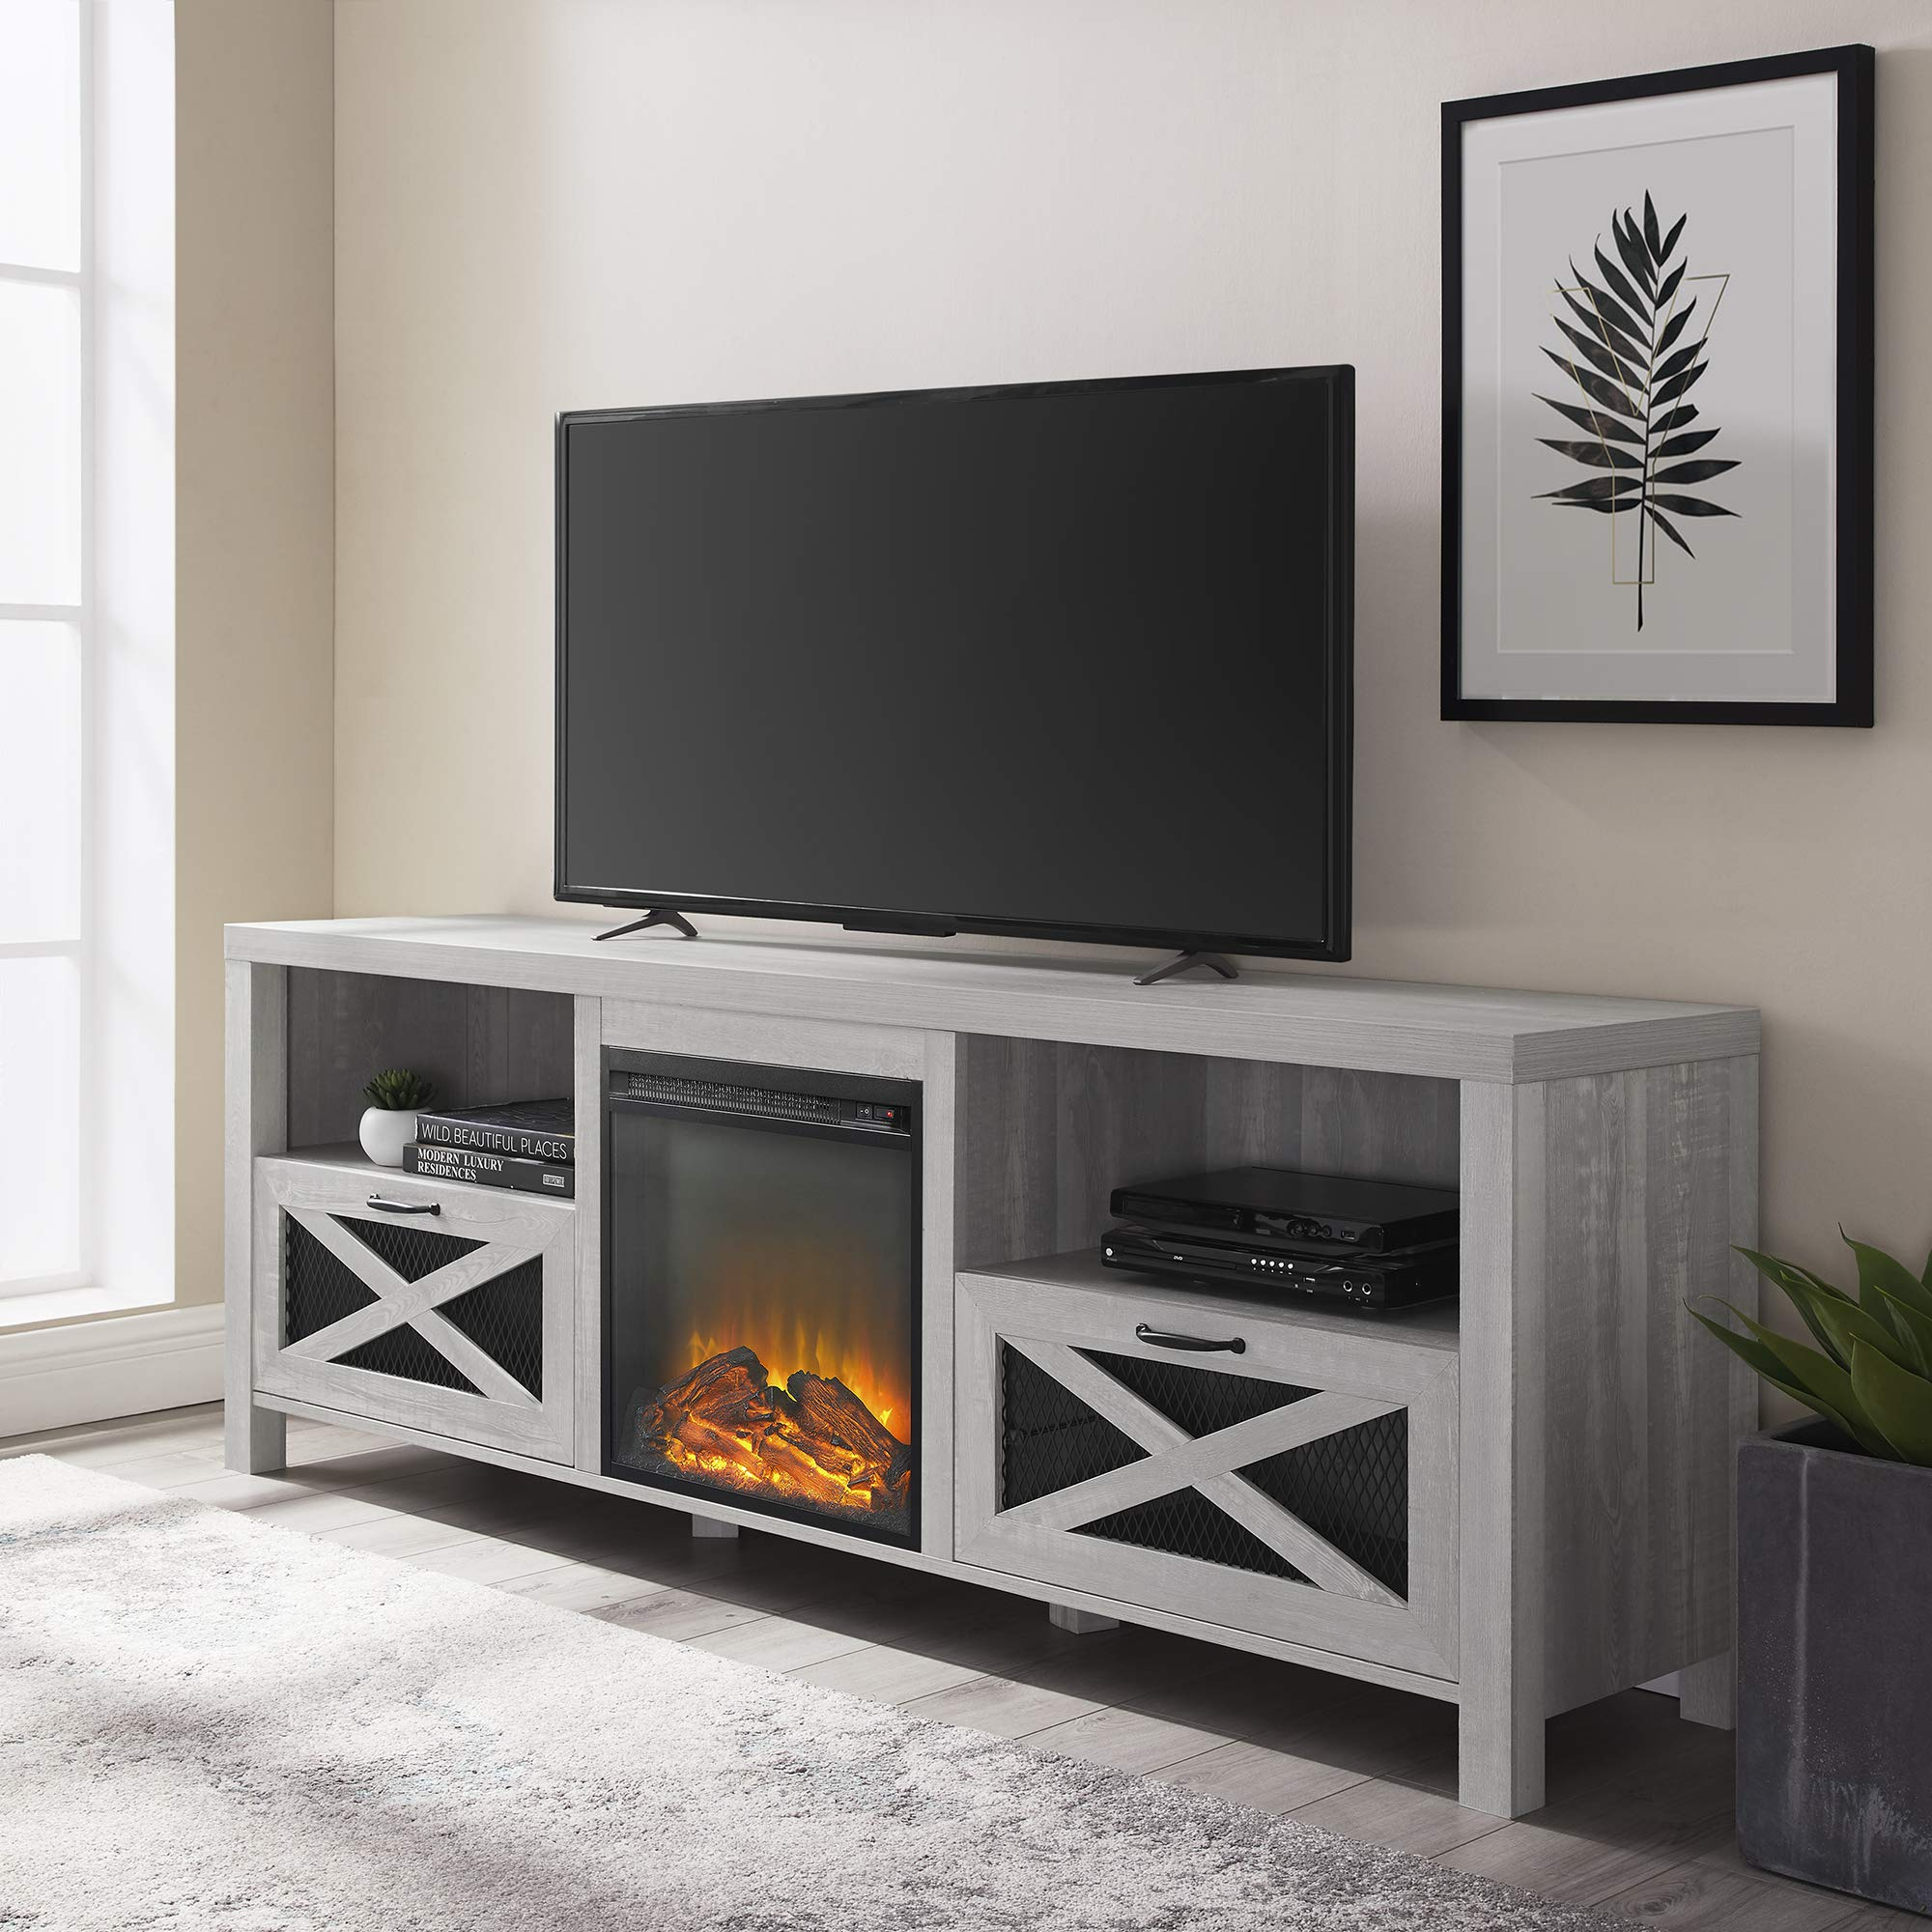 Walker Edison Calgary Industrial Farmhouse X-Drawer Metal Mesh and Wood Fireplace TV Stand for TVs up to 80 Inches, 70 Inch, Stone Grey